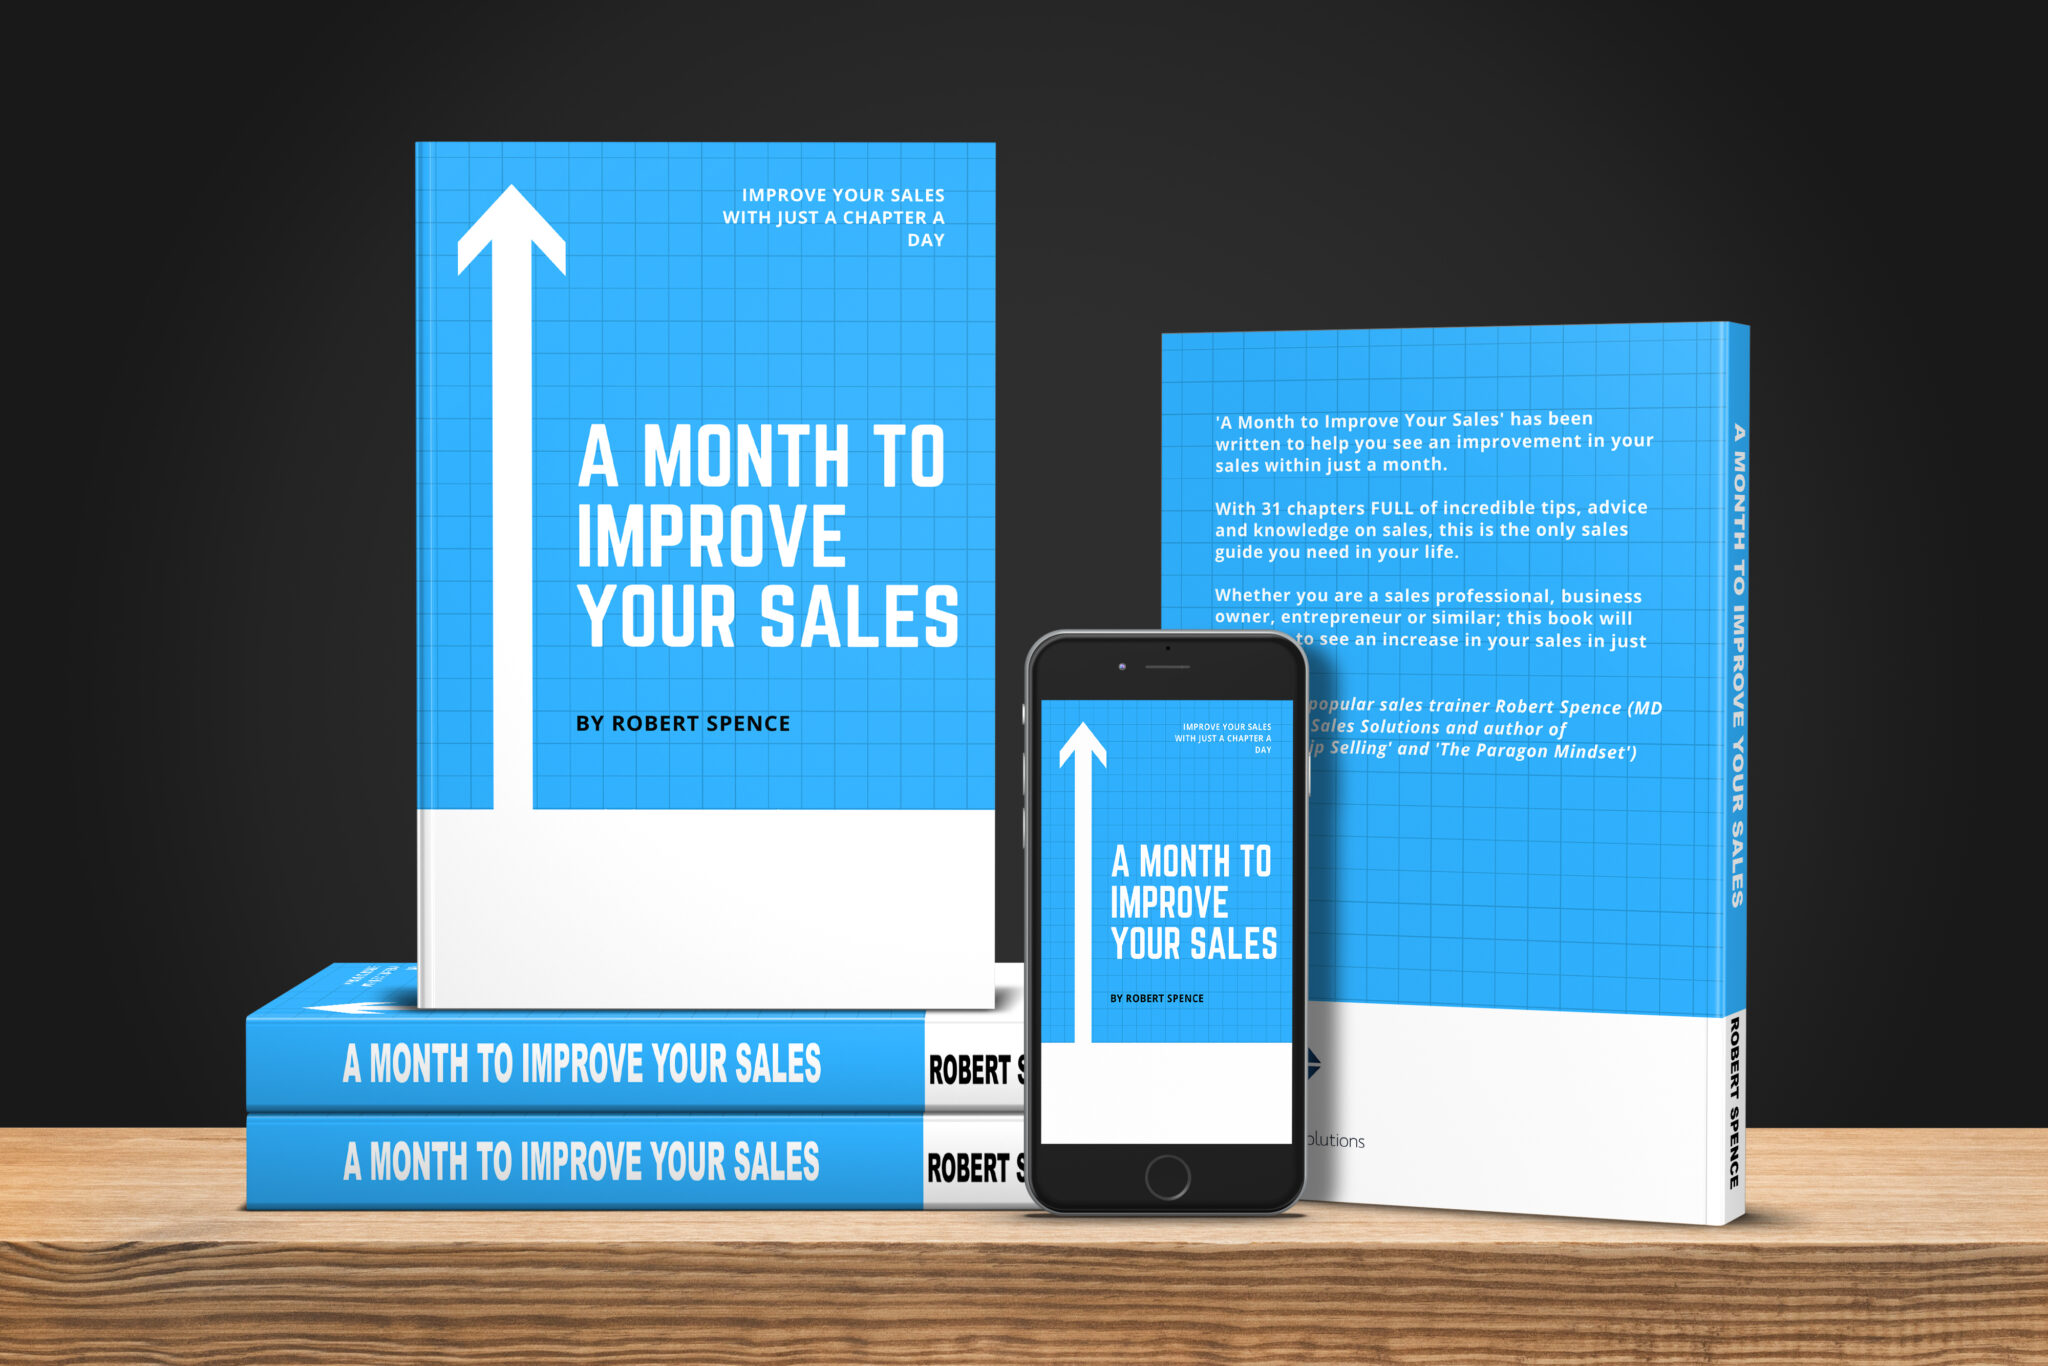 A Month to Improve Your Sales